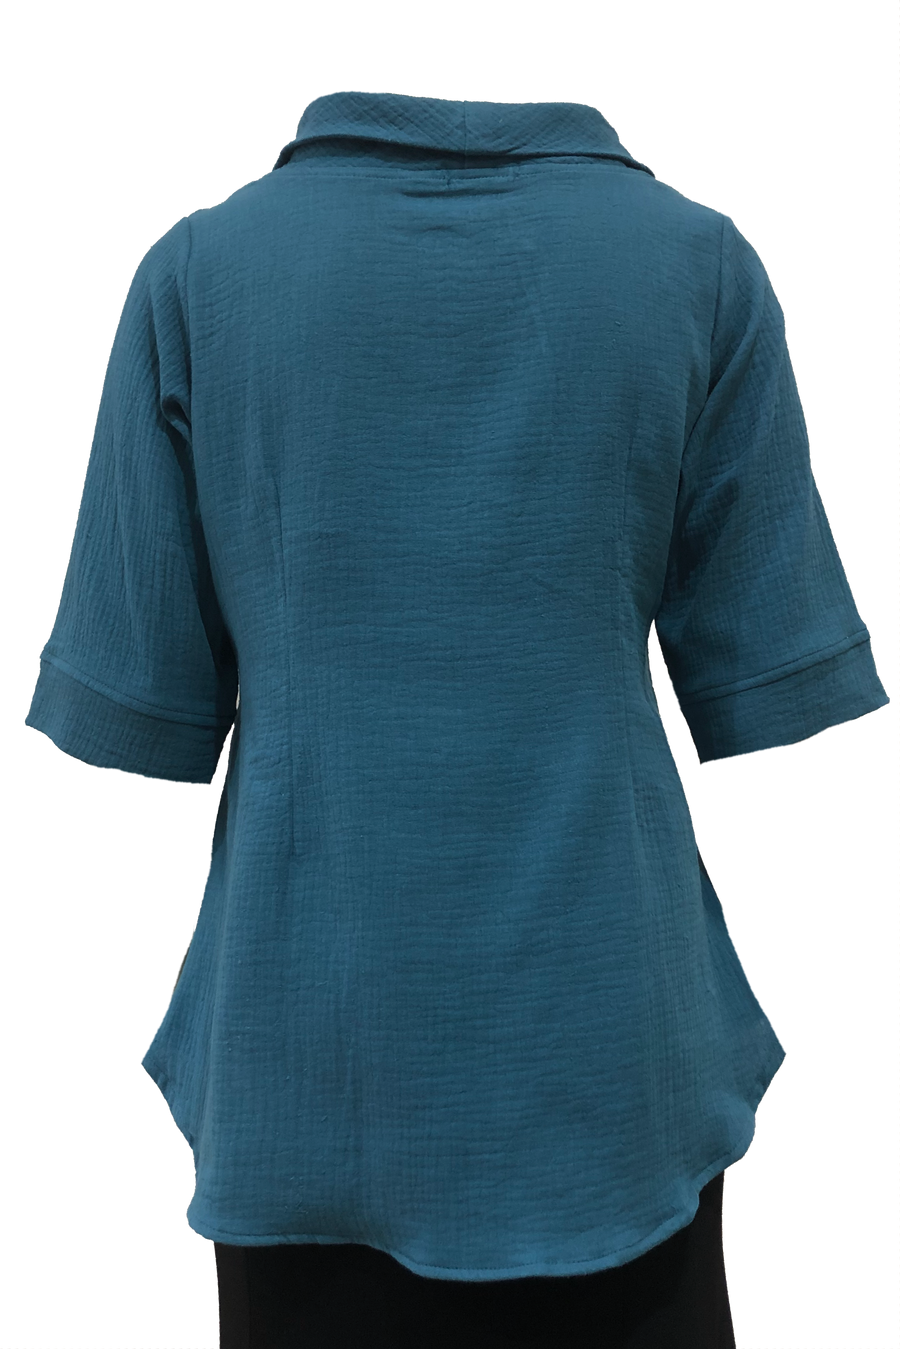 Roll Neck top Teal Waffle Cotton